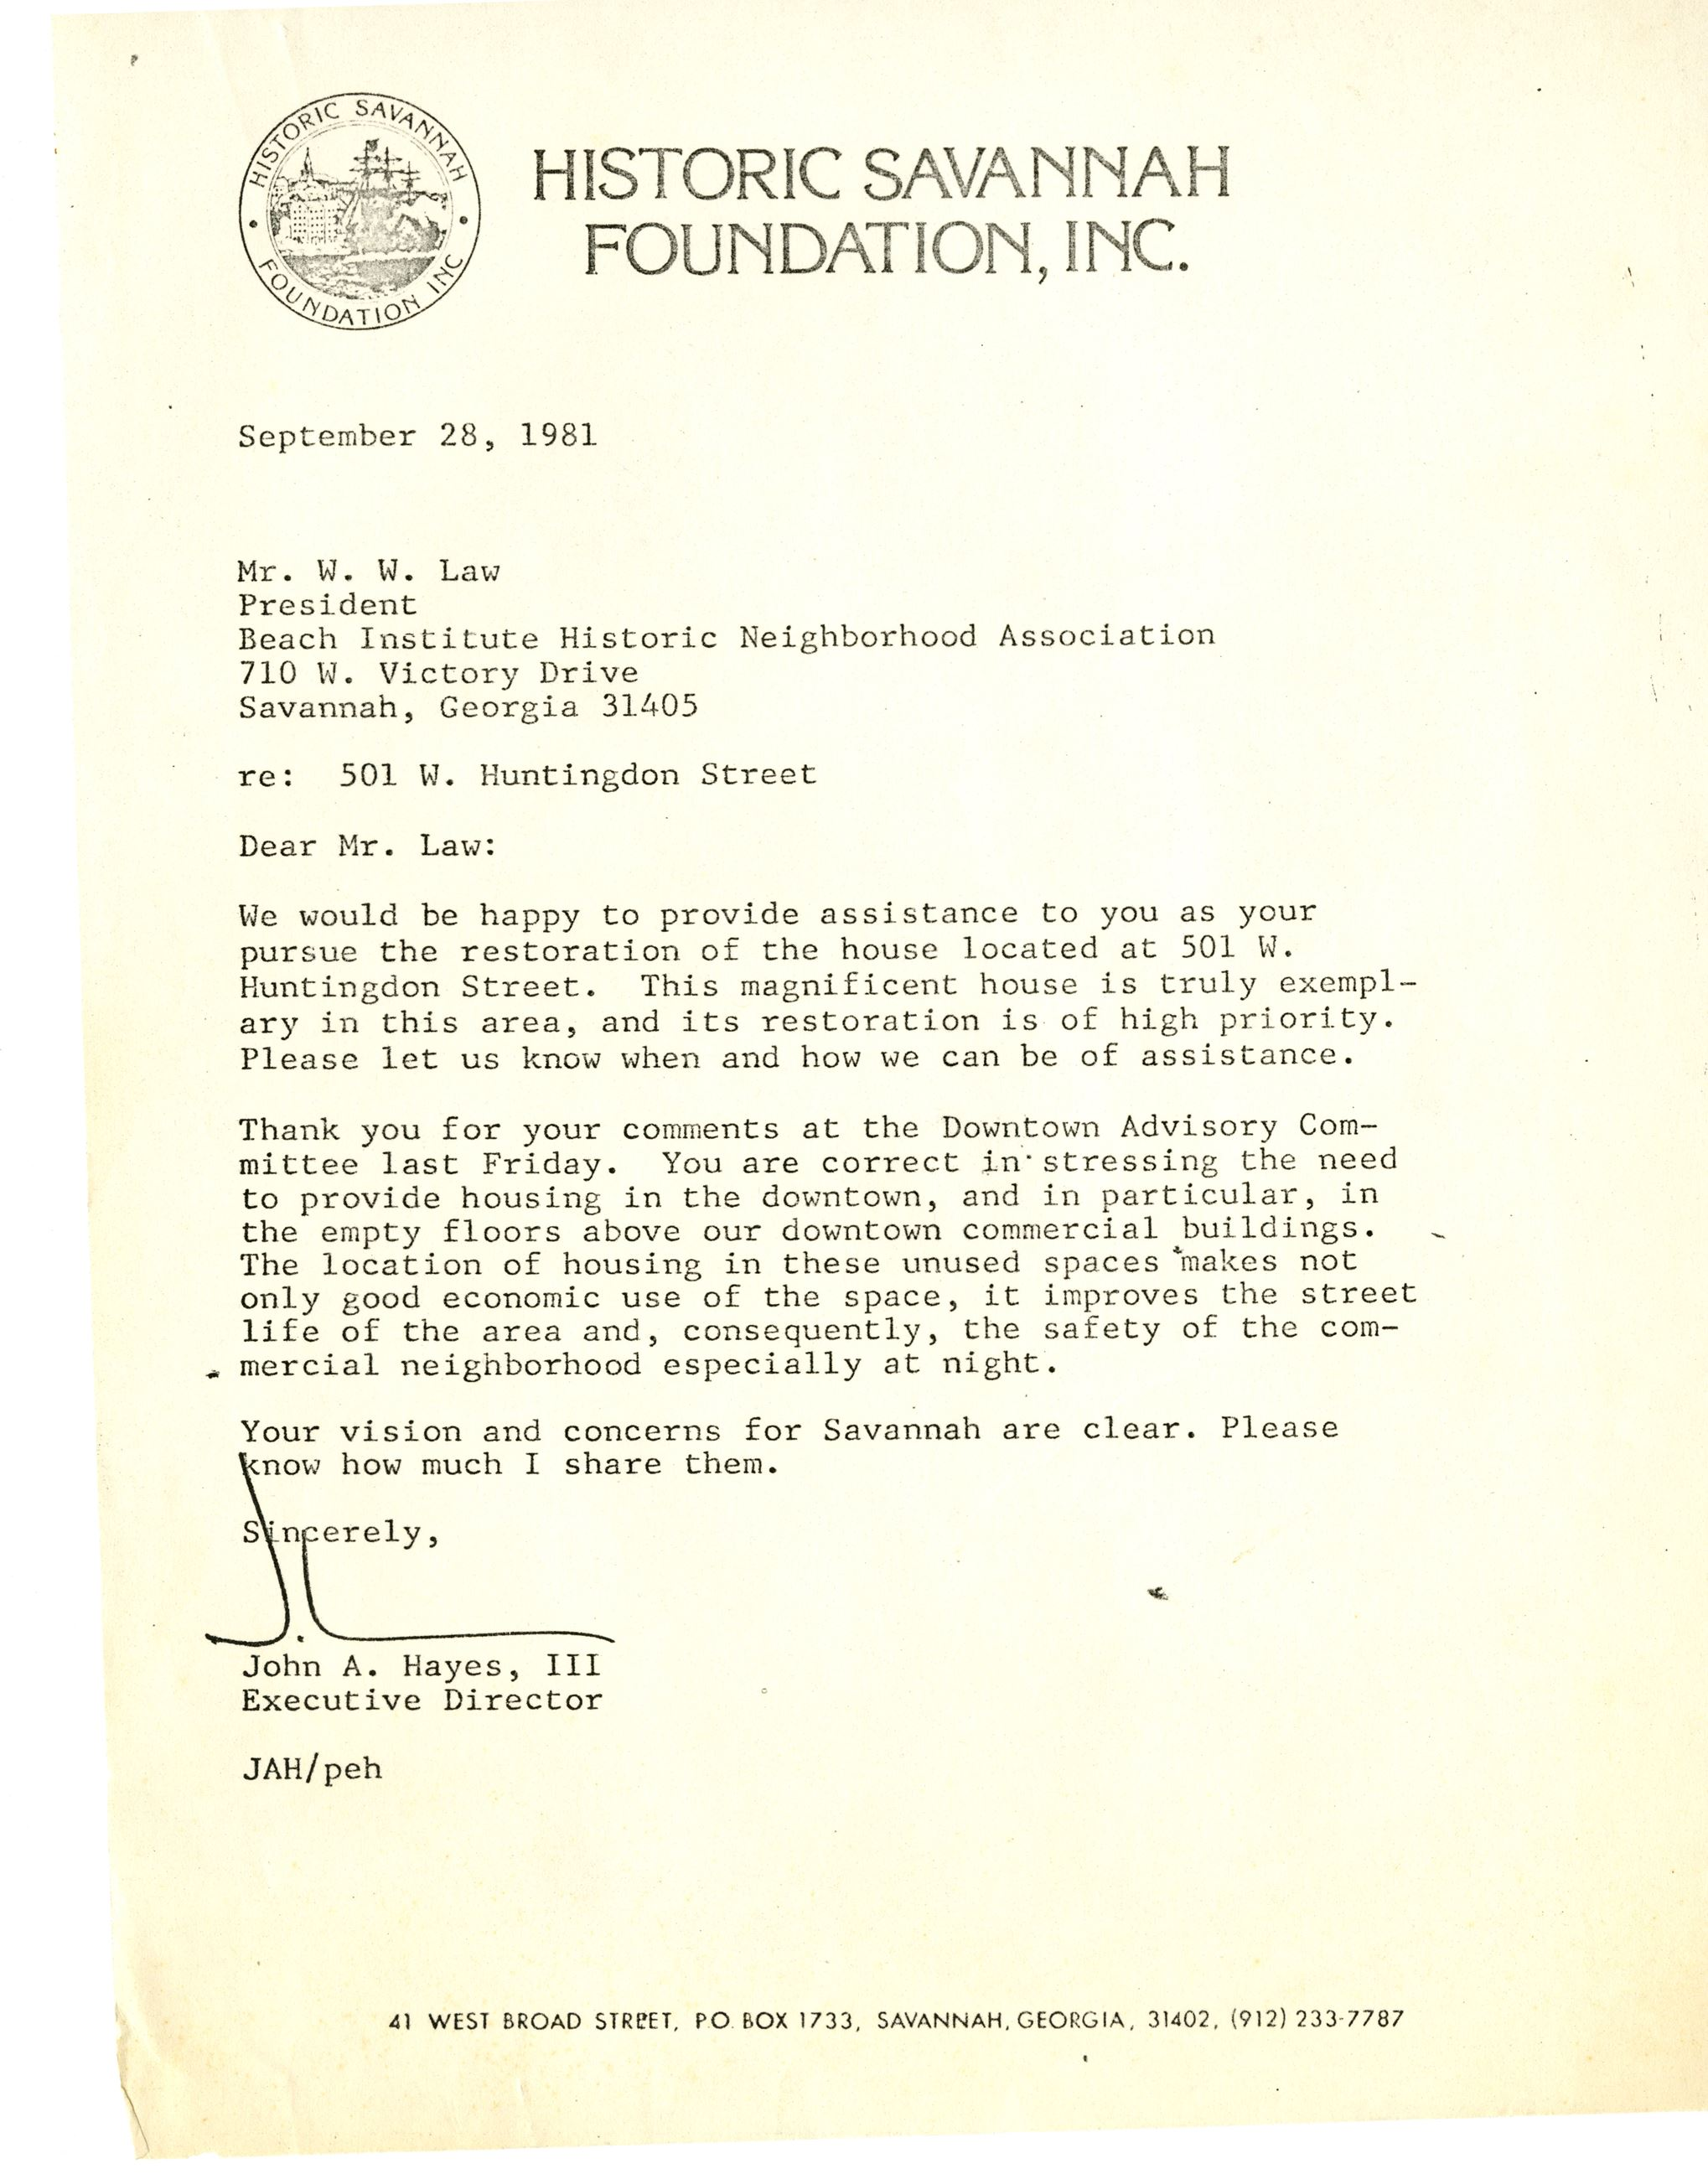 Historic Savannah Foundation Letter - need for downtown 2nd-floor housing